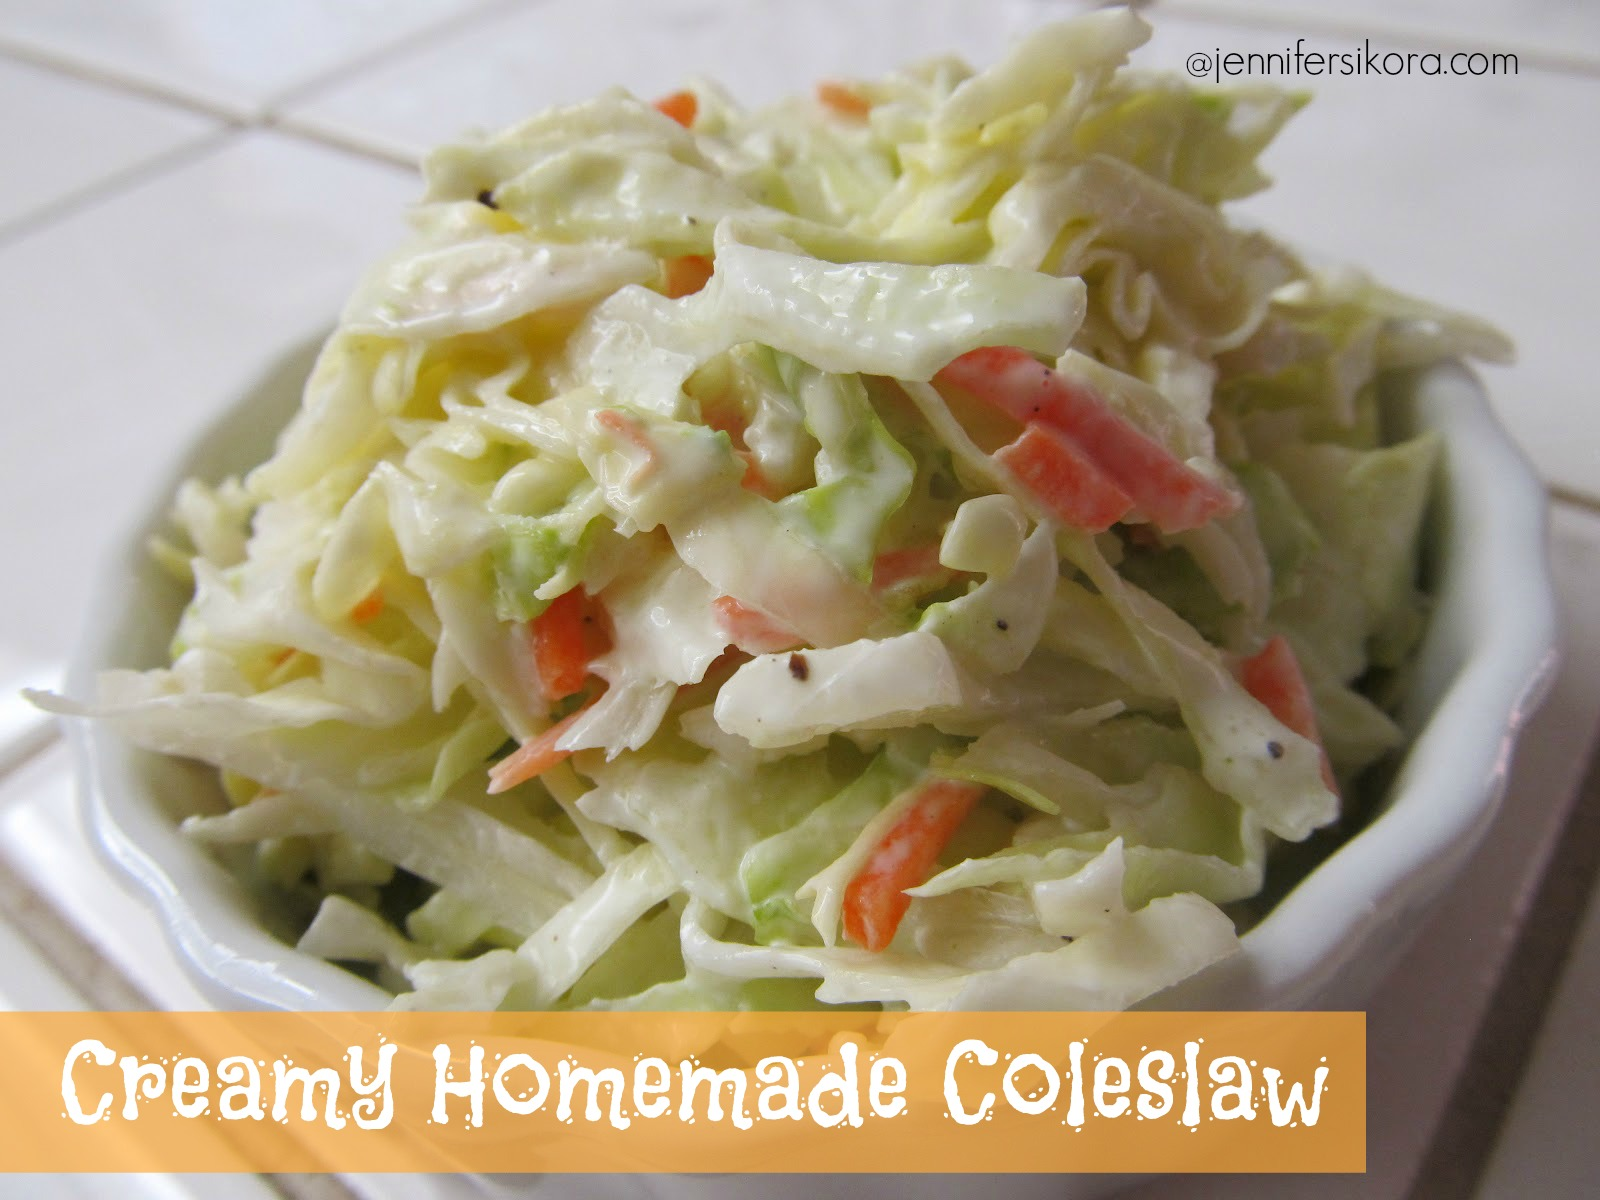 ... creamy asian slaw recipe and serve with slaw with creamy asian slaw